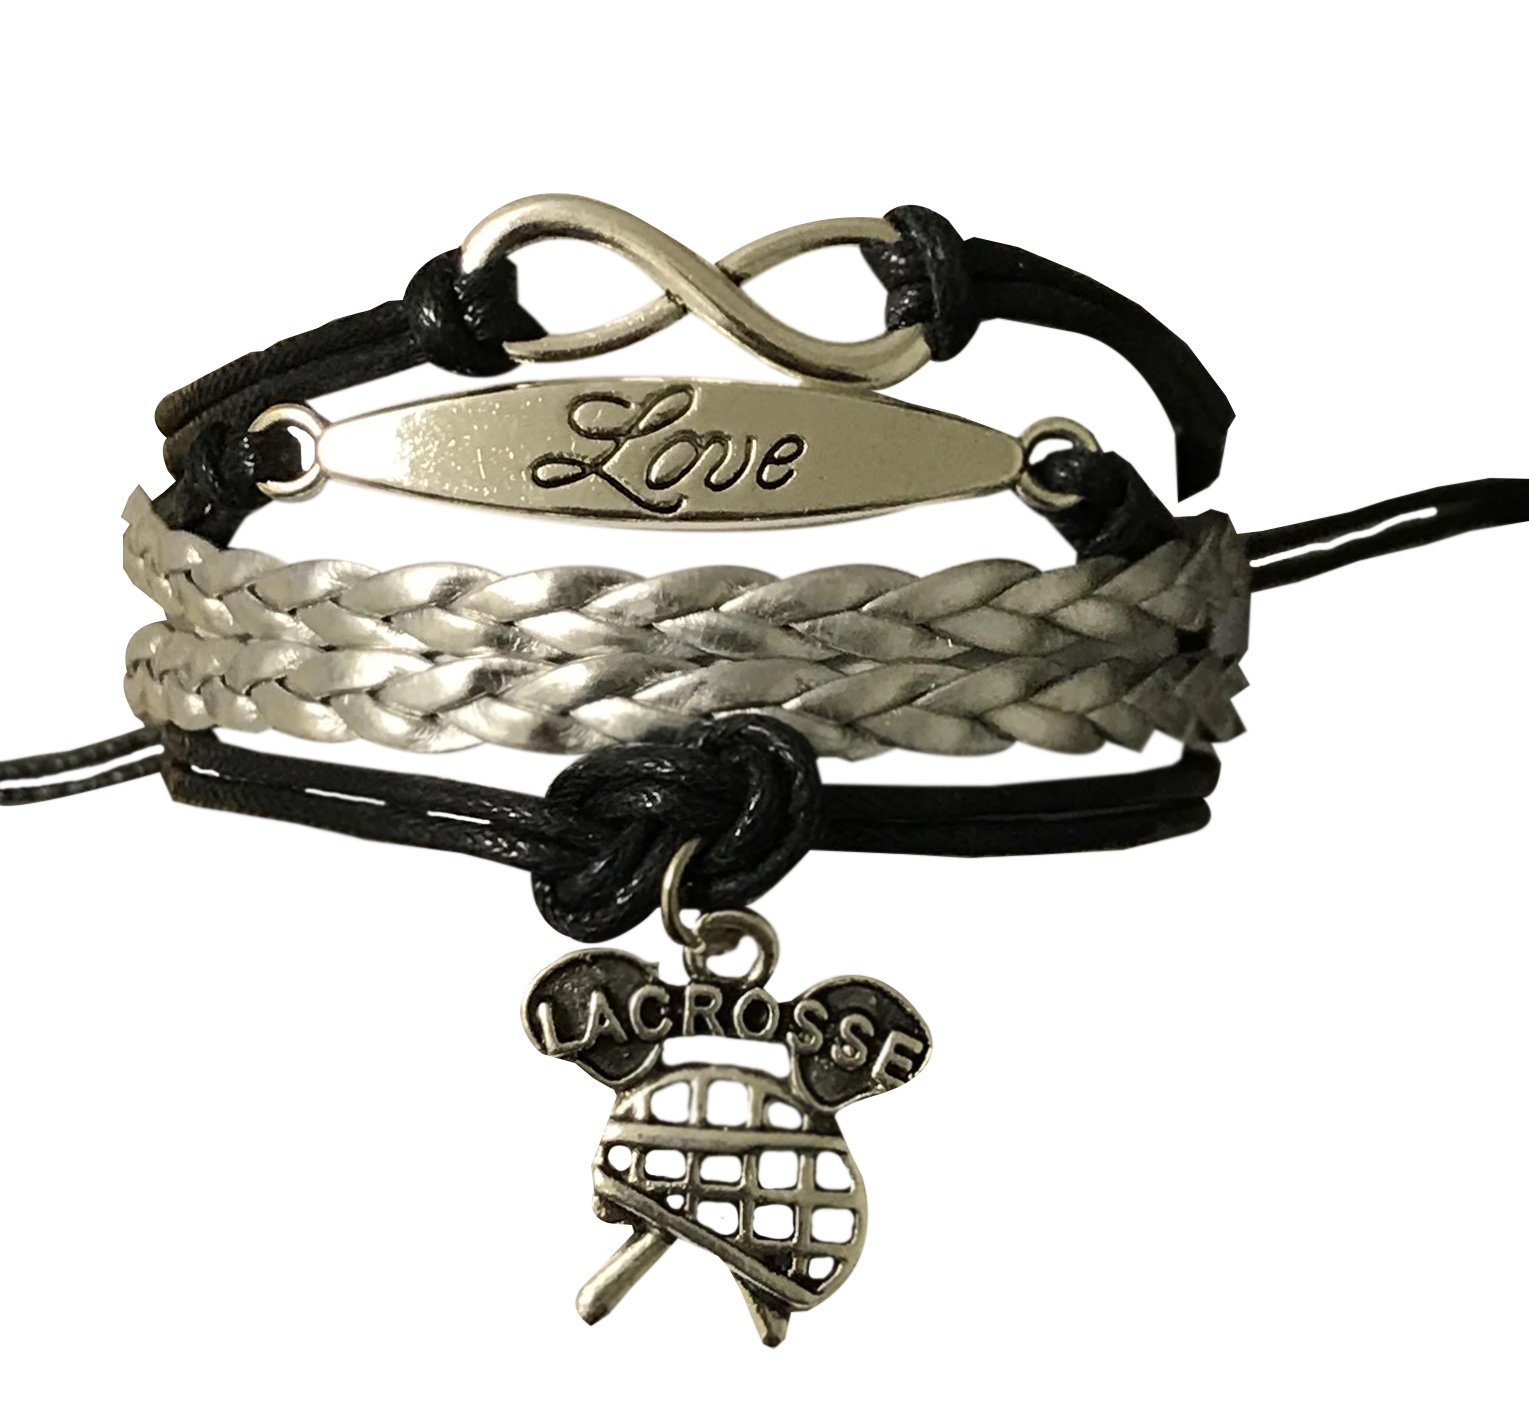 Lacrosse Infinity Charm Bracelet- Lacrosse Jewelry - Perfect Gift For Girl Lacrosse Players